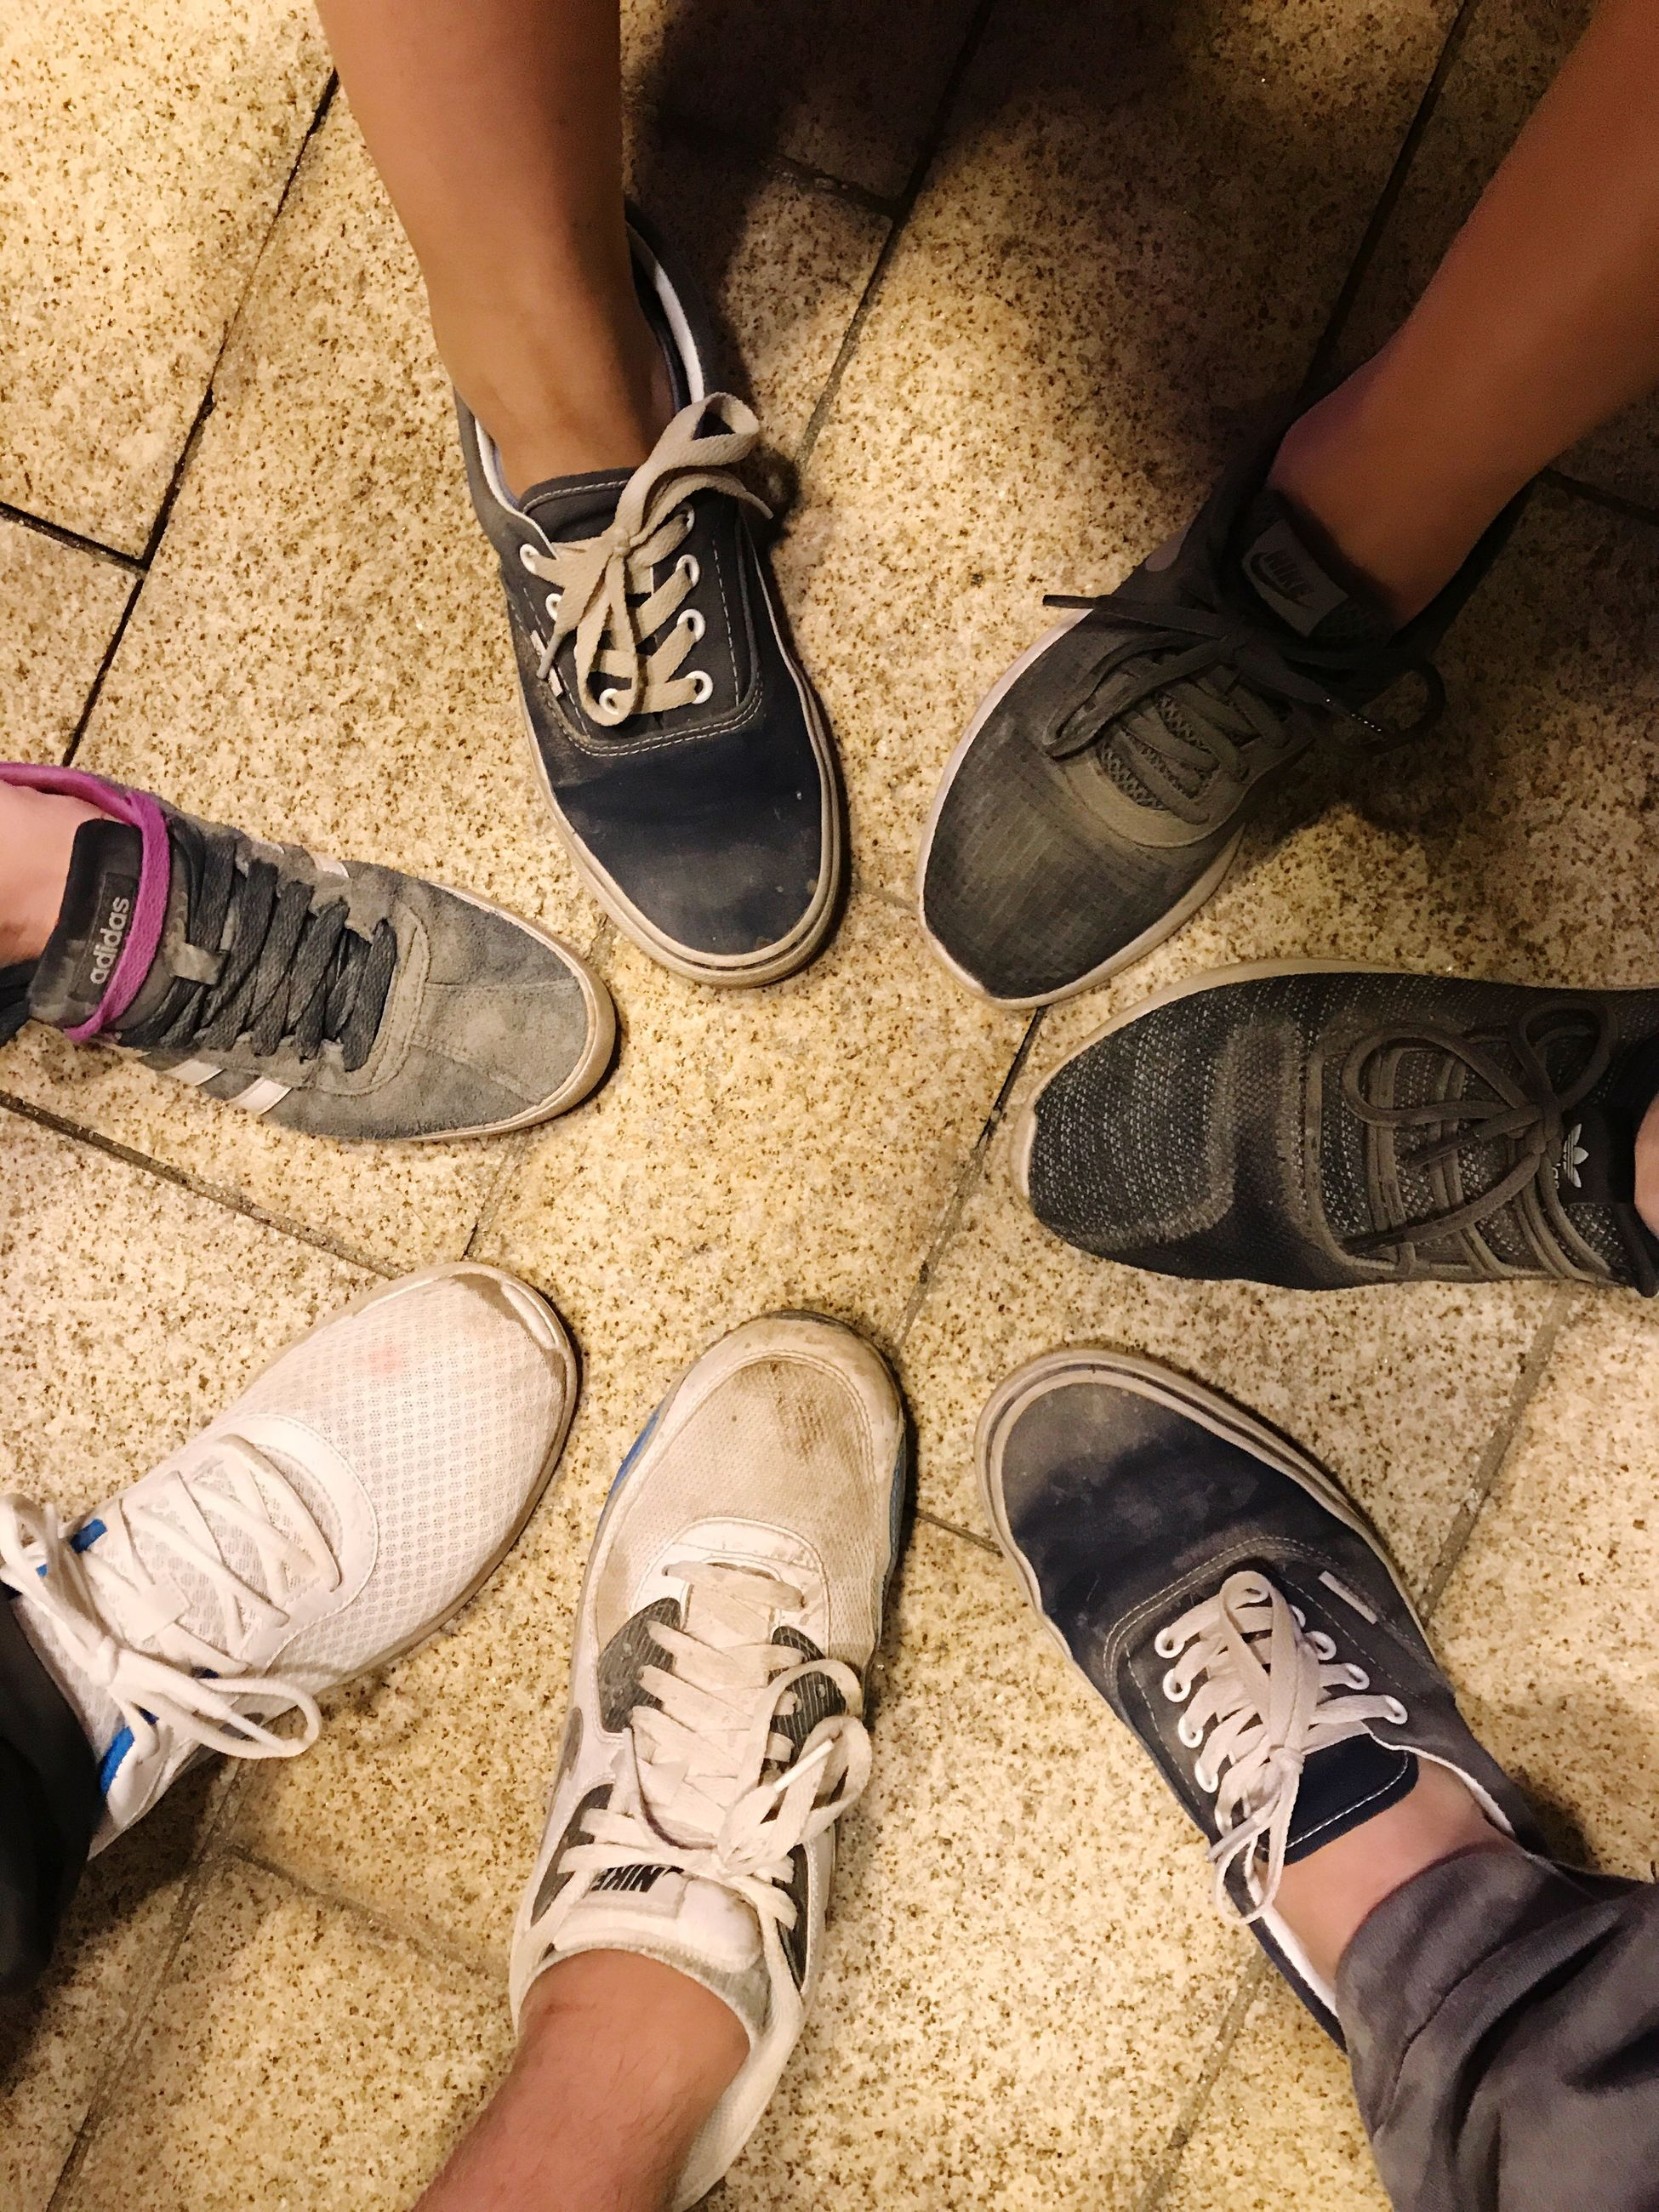 shoe, human leg, human body part, low section, standing, real people, men, high angle view, lifestyles, one person, sandal, outdoors, friendship, day, people, adult, adults only